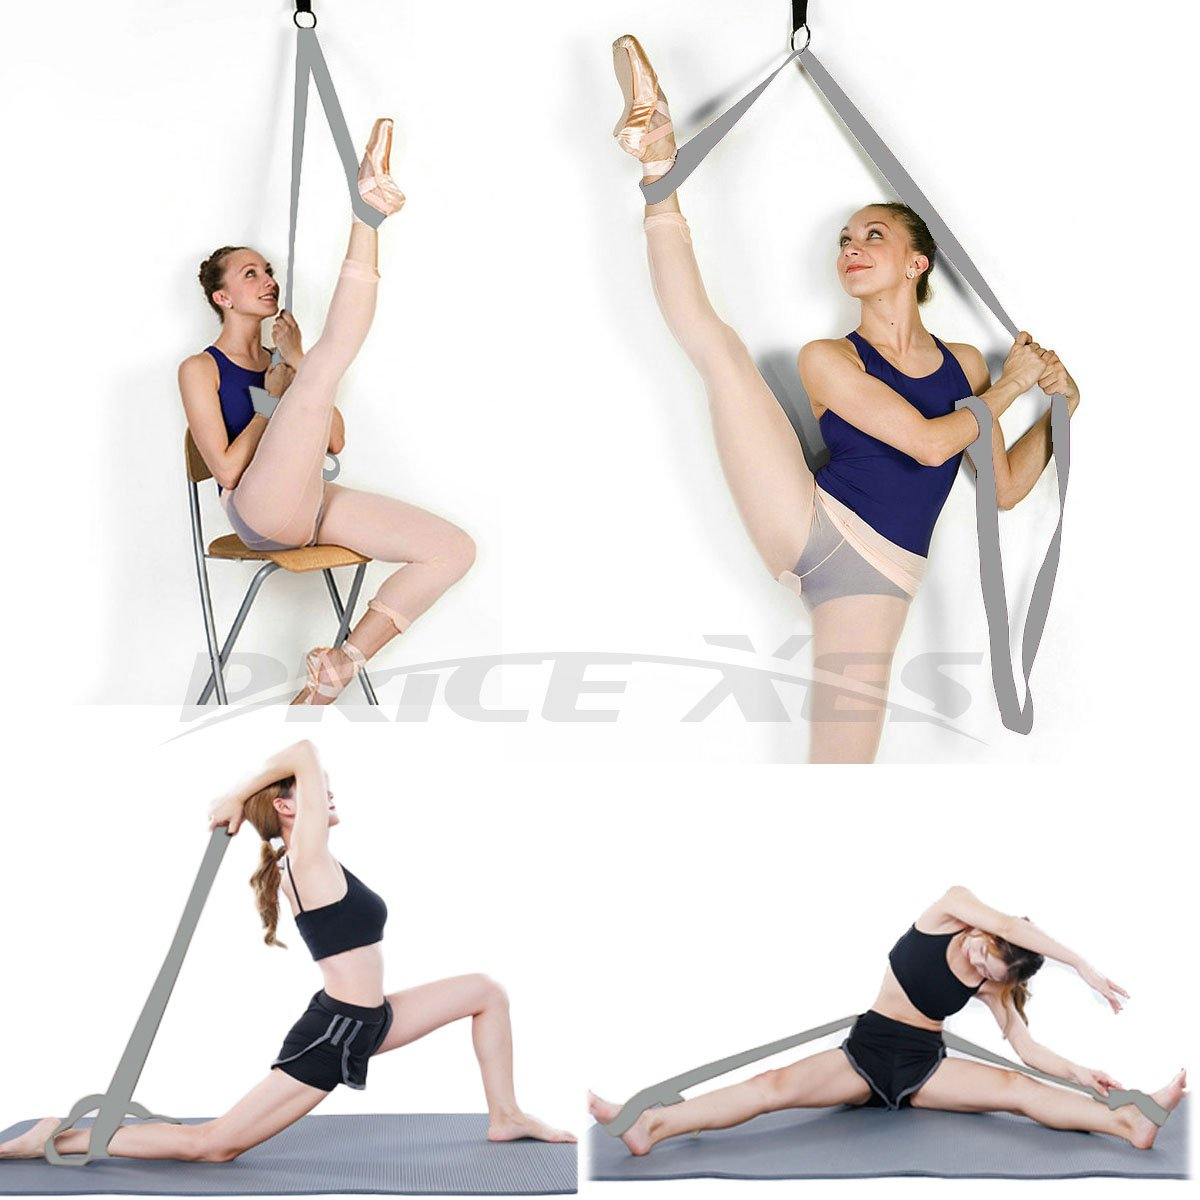 Leg Ballet Yoga Stretcher Get More Flexible Great for Cheer Dance Gymnastics or ANY Sport Trainer Premium stretch Fitness Equipment Band Flexibility /& Stretching Leg Straps Door Attachment